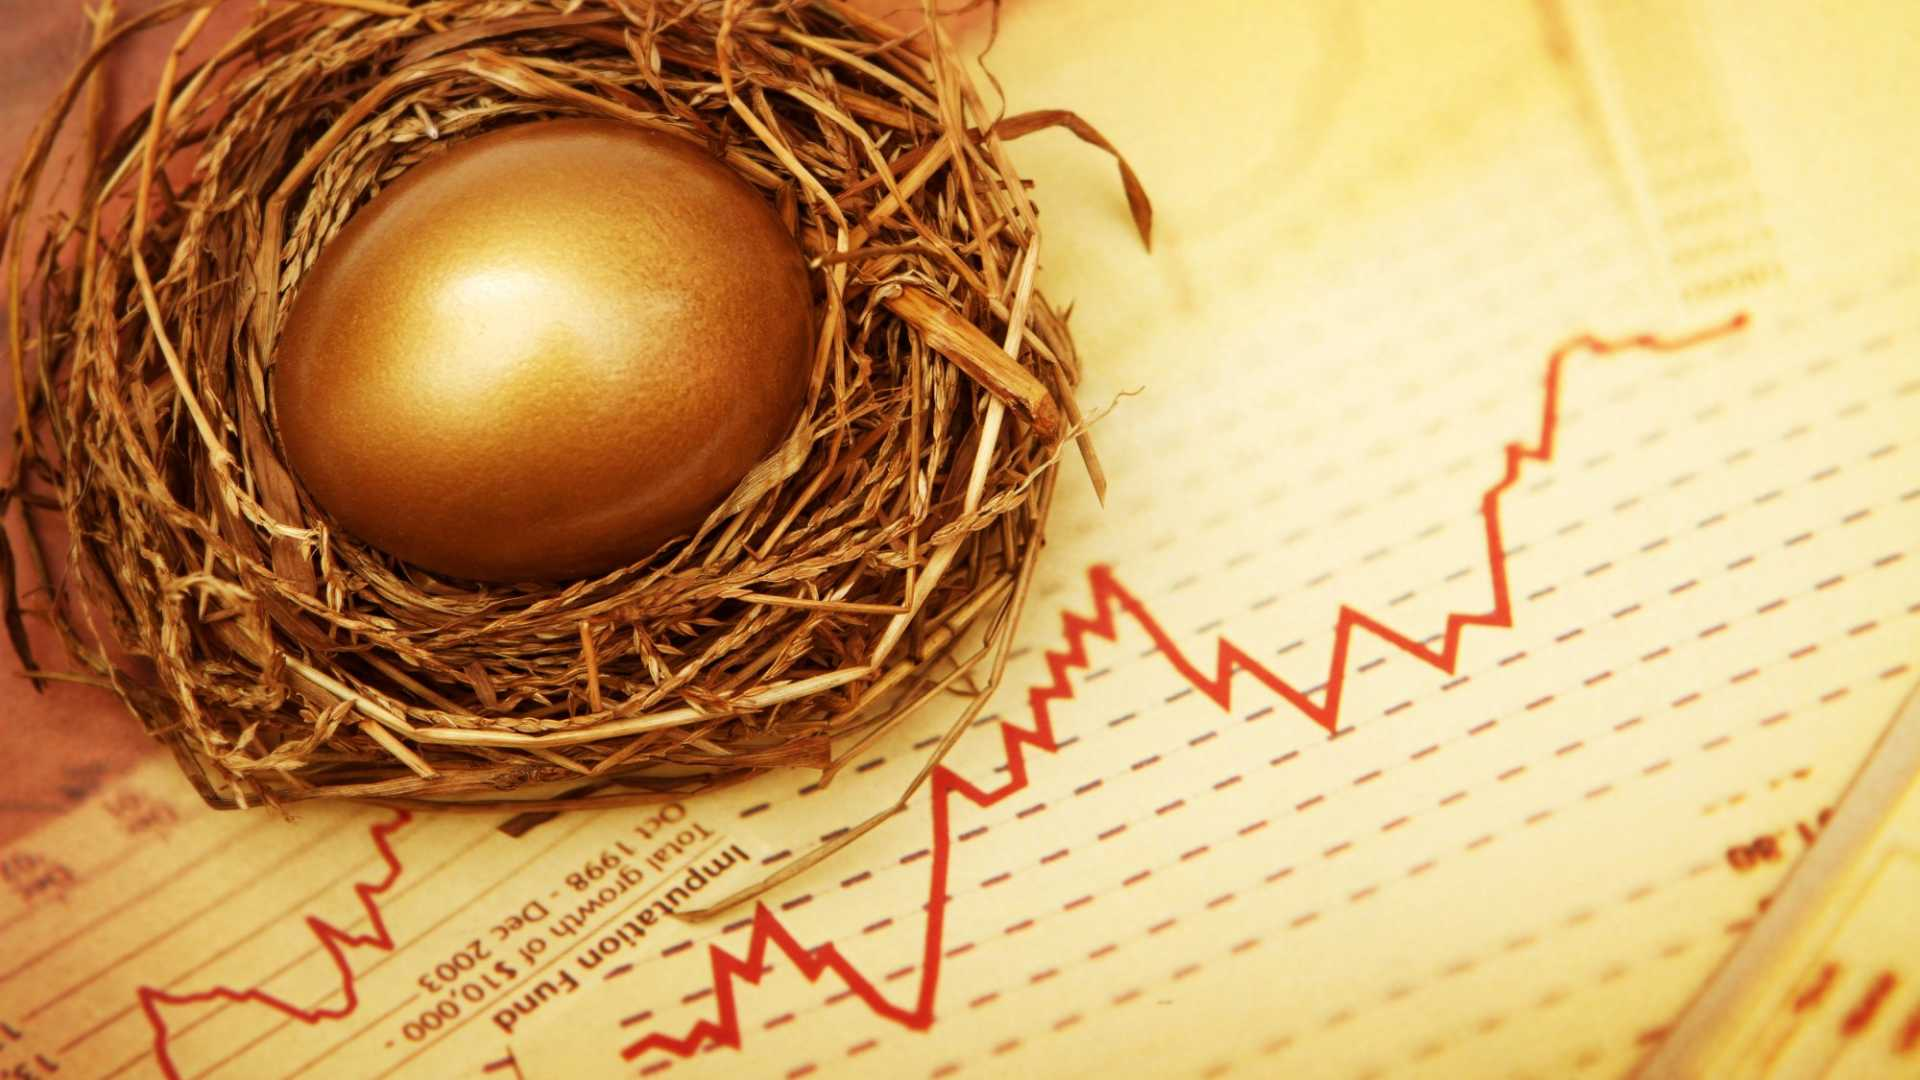 Getting your start-up to hatch requires qualifying with the right investors.